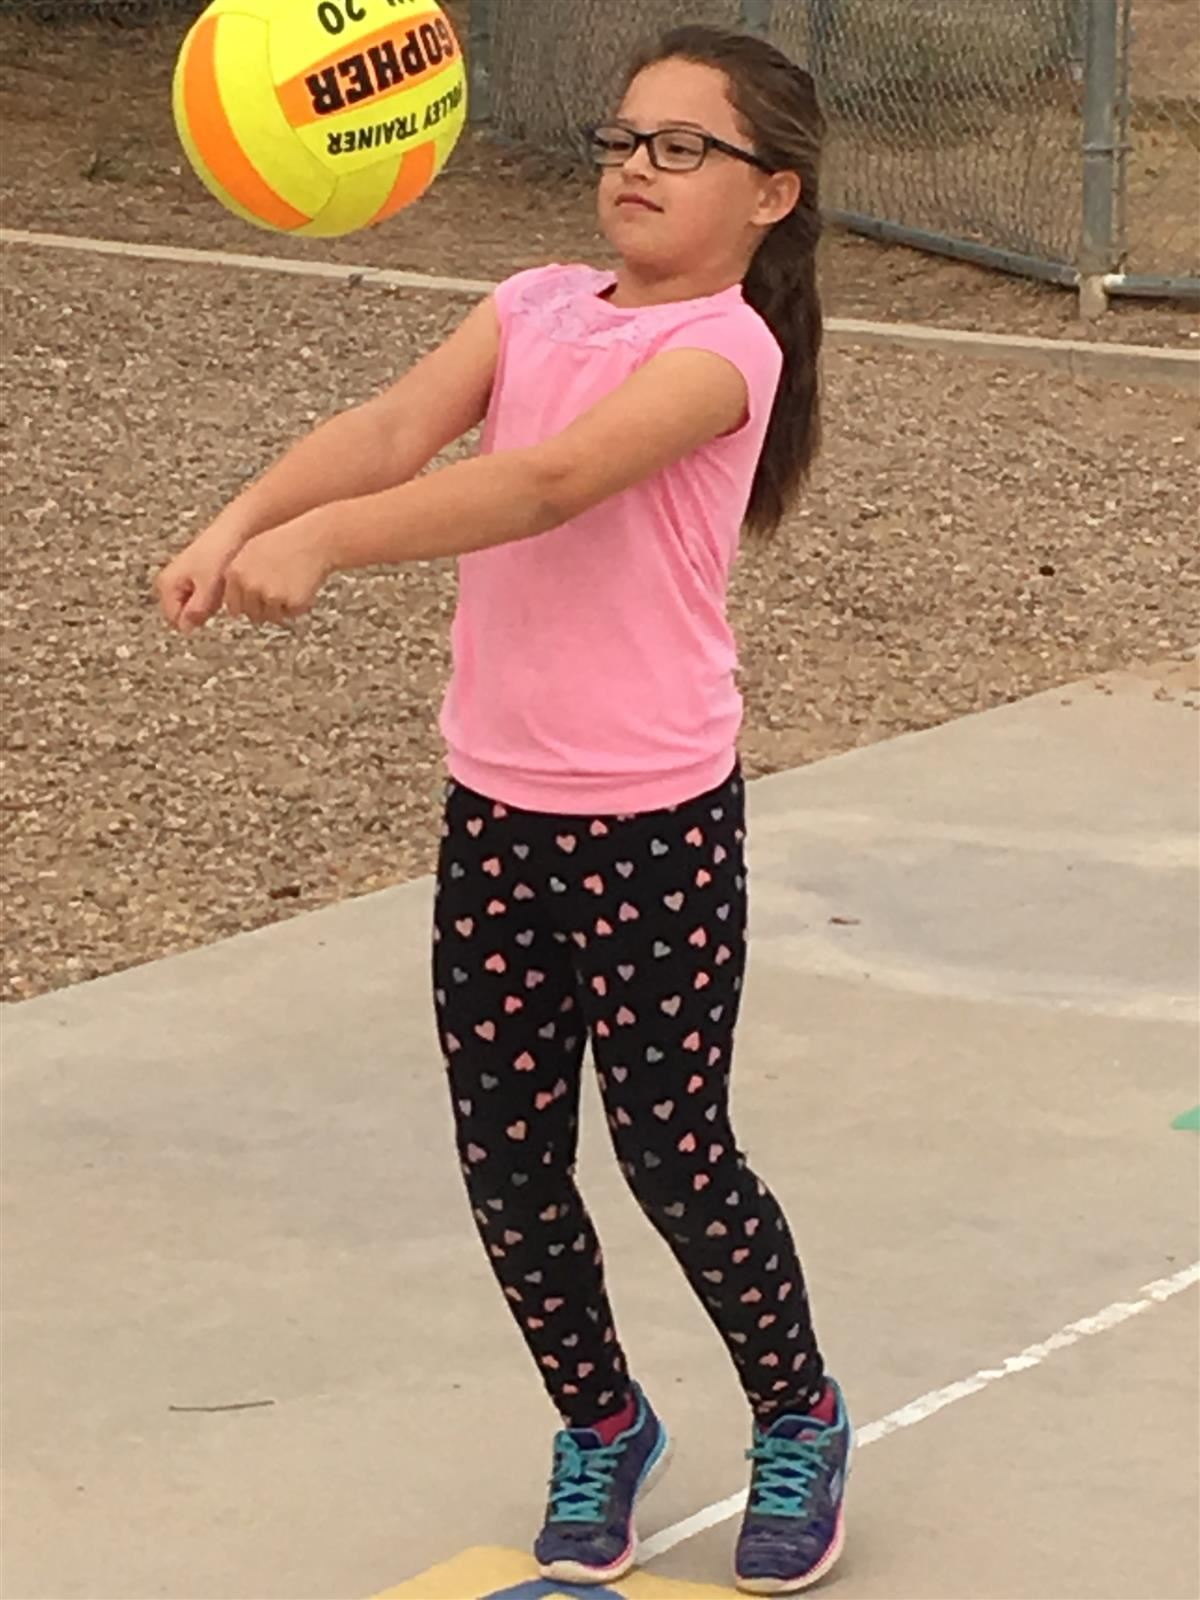 Little adorable girl playing beach volleyball with ball